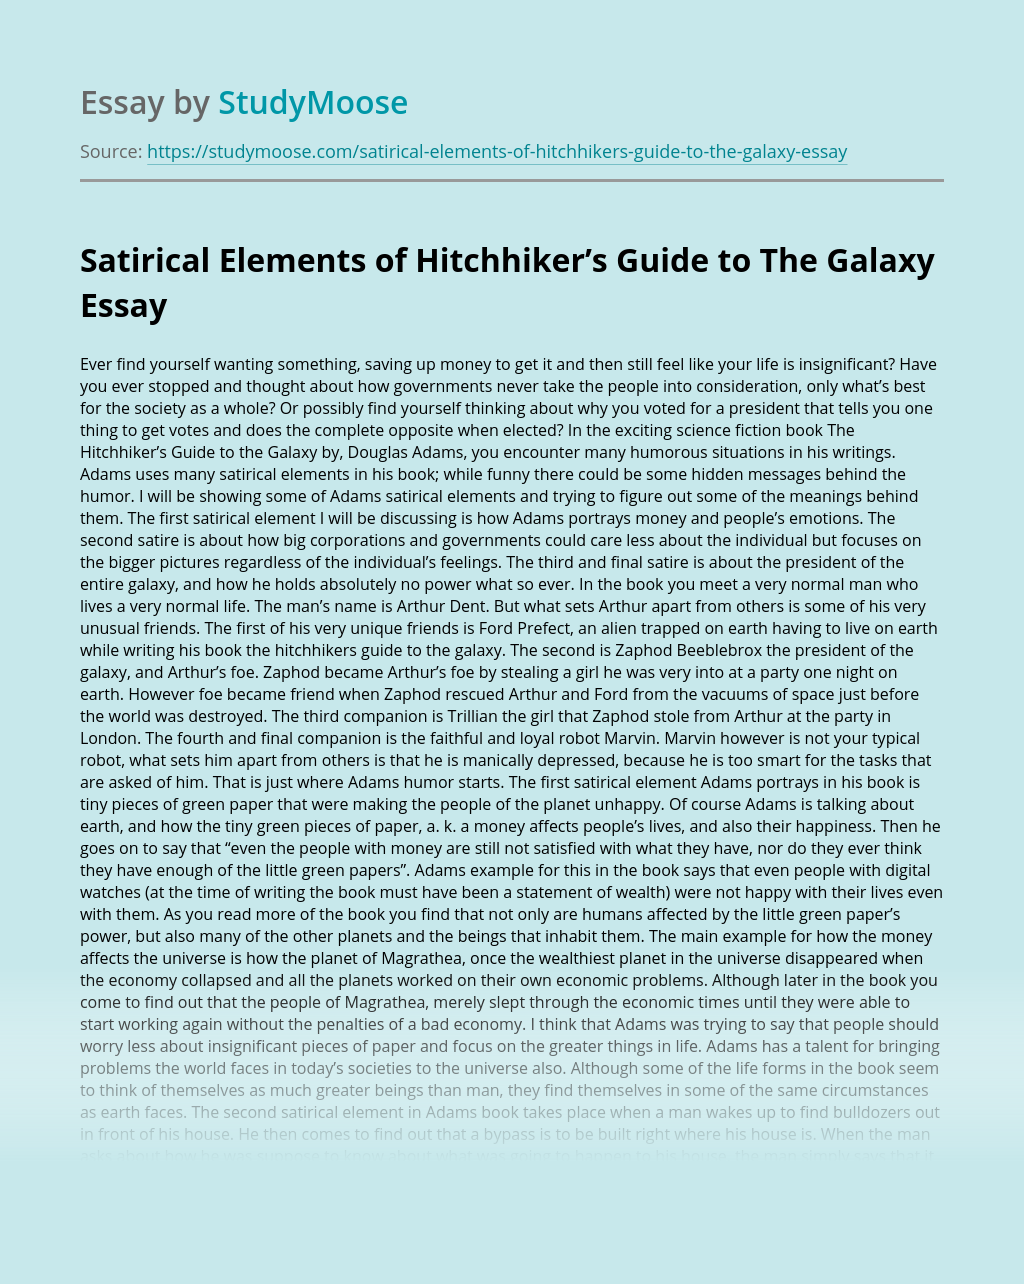 Satirical Elements of Hitchhiker's Guide to The Galaxy